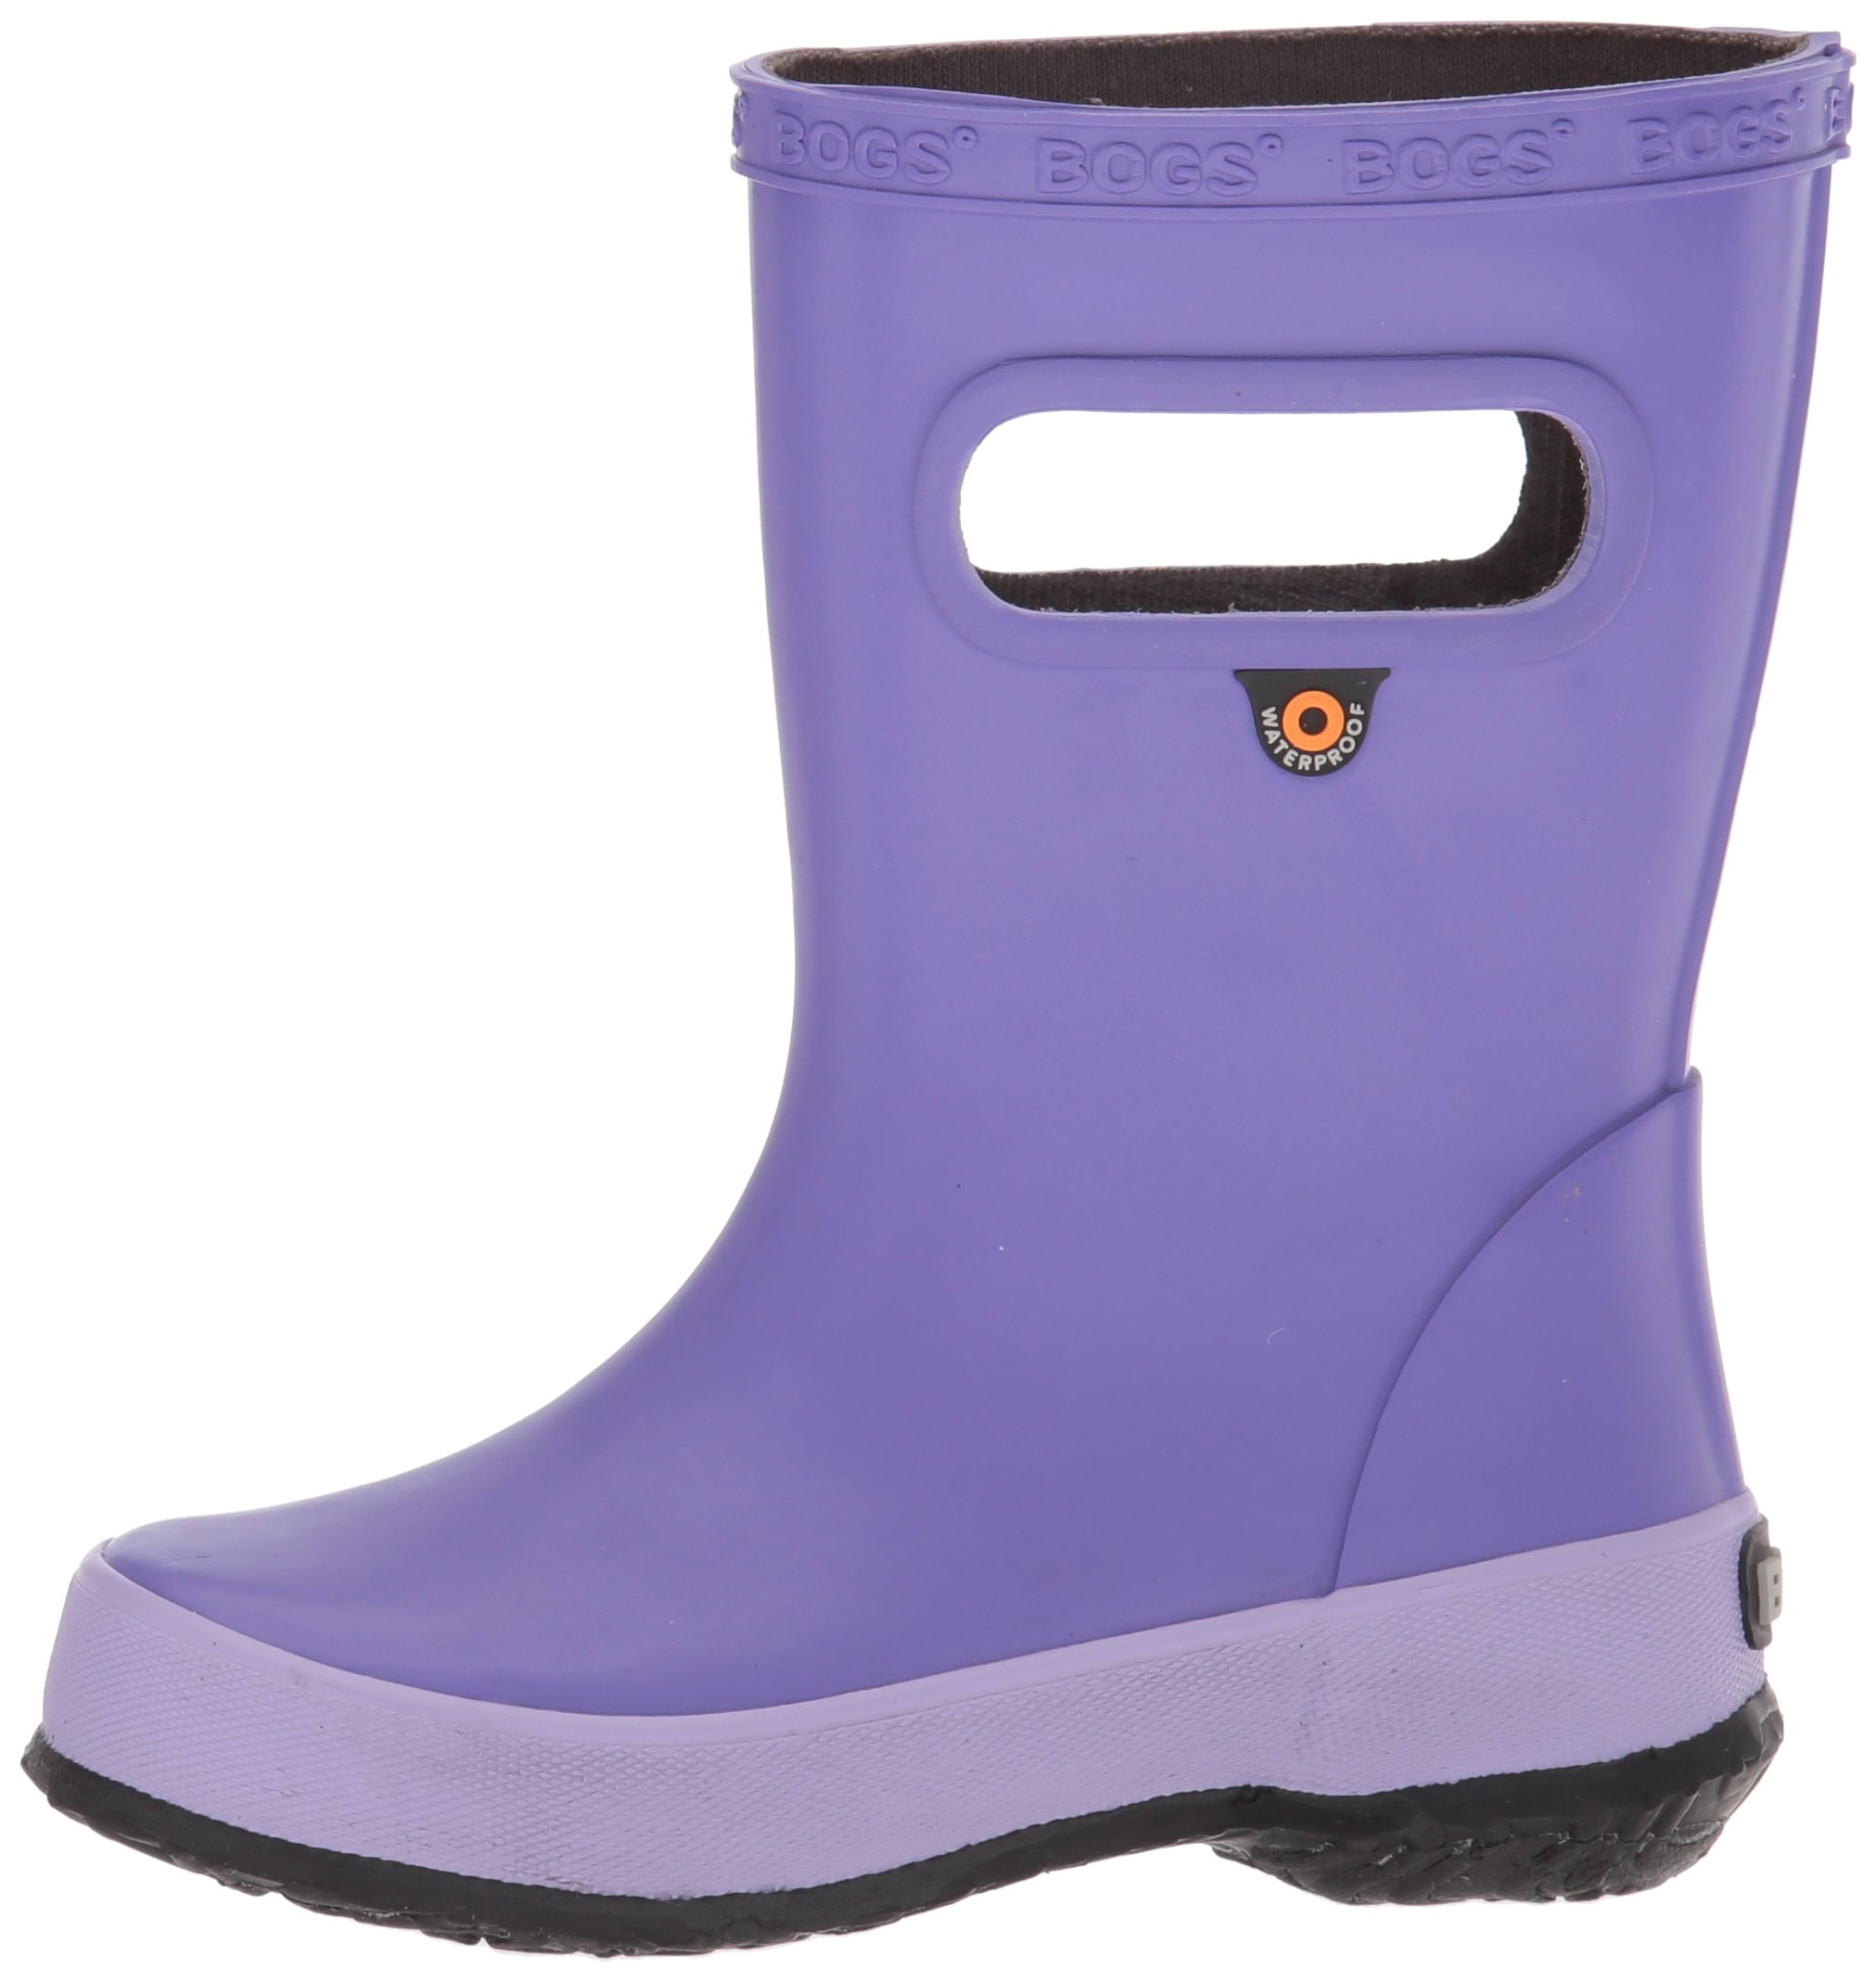 Bogs Kids' Skipper Waterproof Rubber Rain Boot for Boys and Girls,Solid Violet,11 M US Little Kid by Bogs (Image #5)